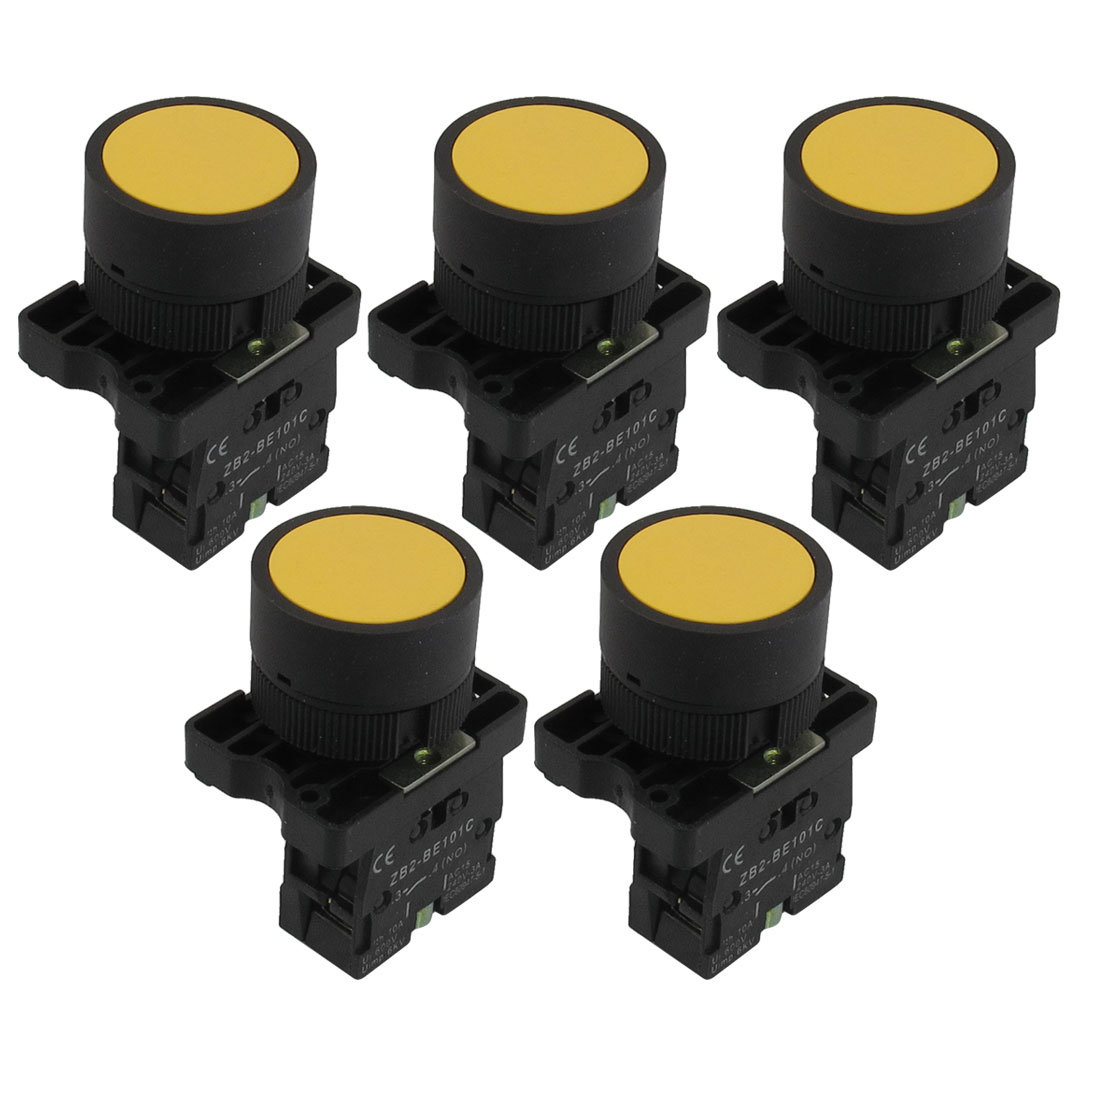 5pcs 2mm 1 NO N/O Yellow Sign Momentary Push Button Switch 600V 10A ZB2-EA51